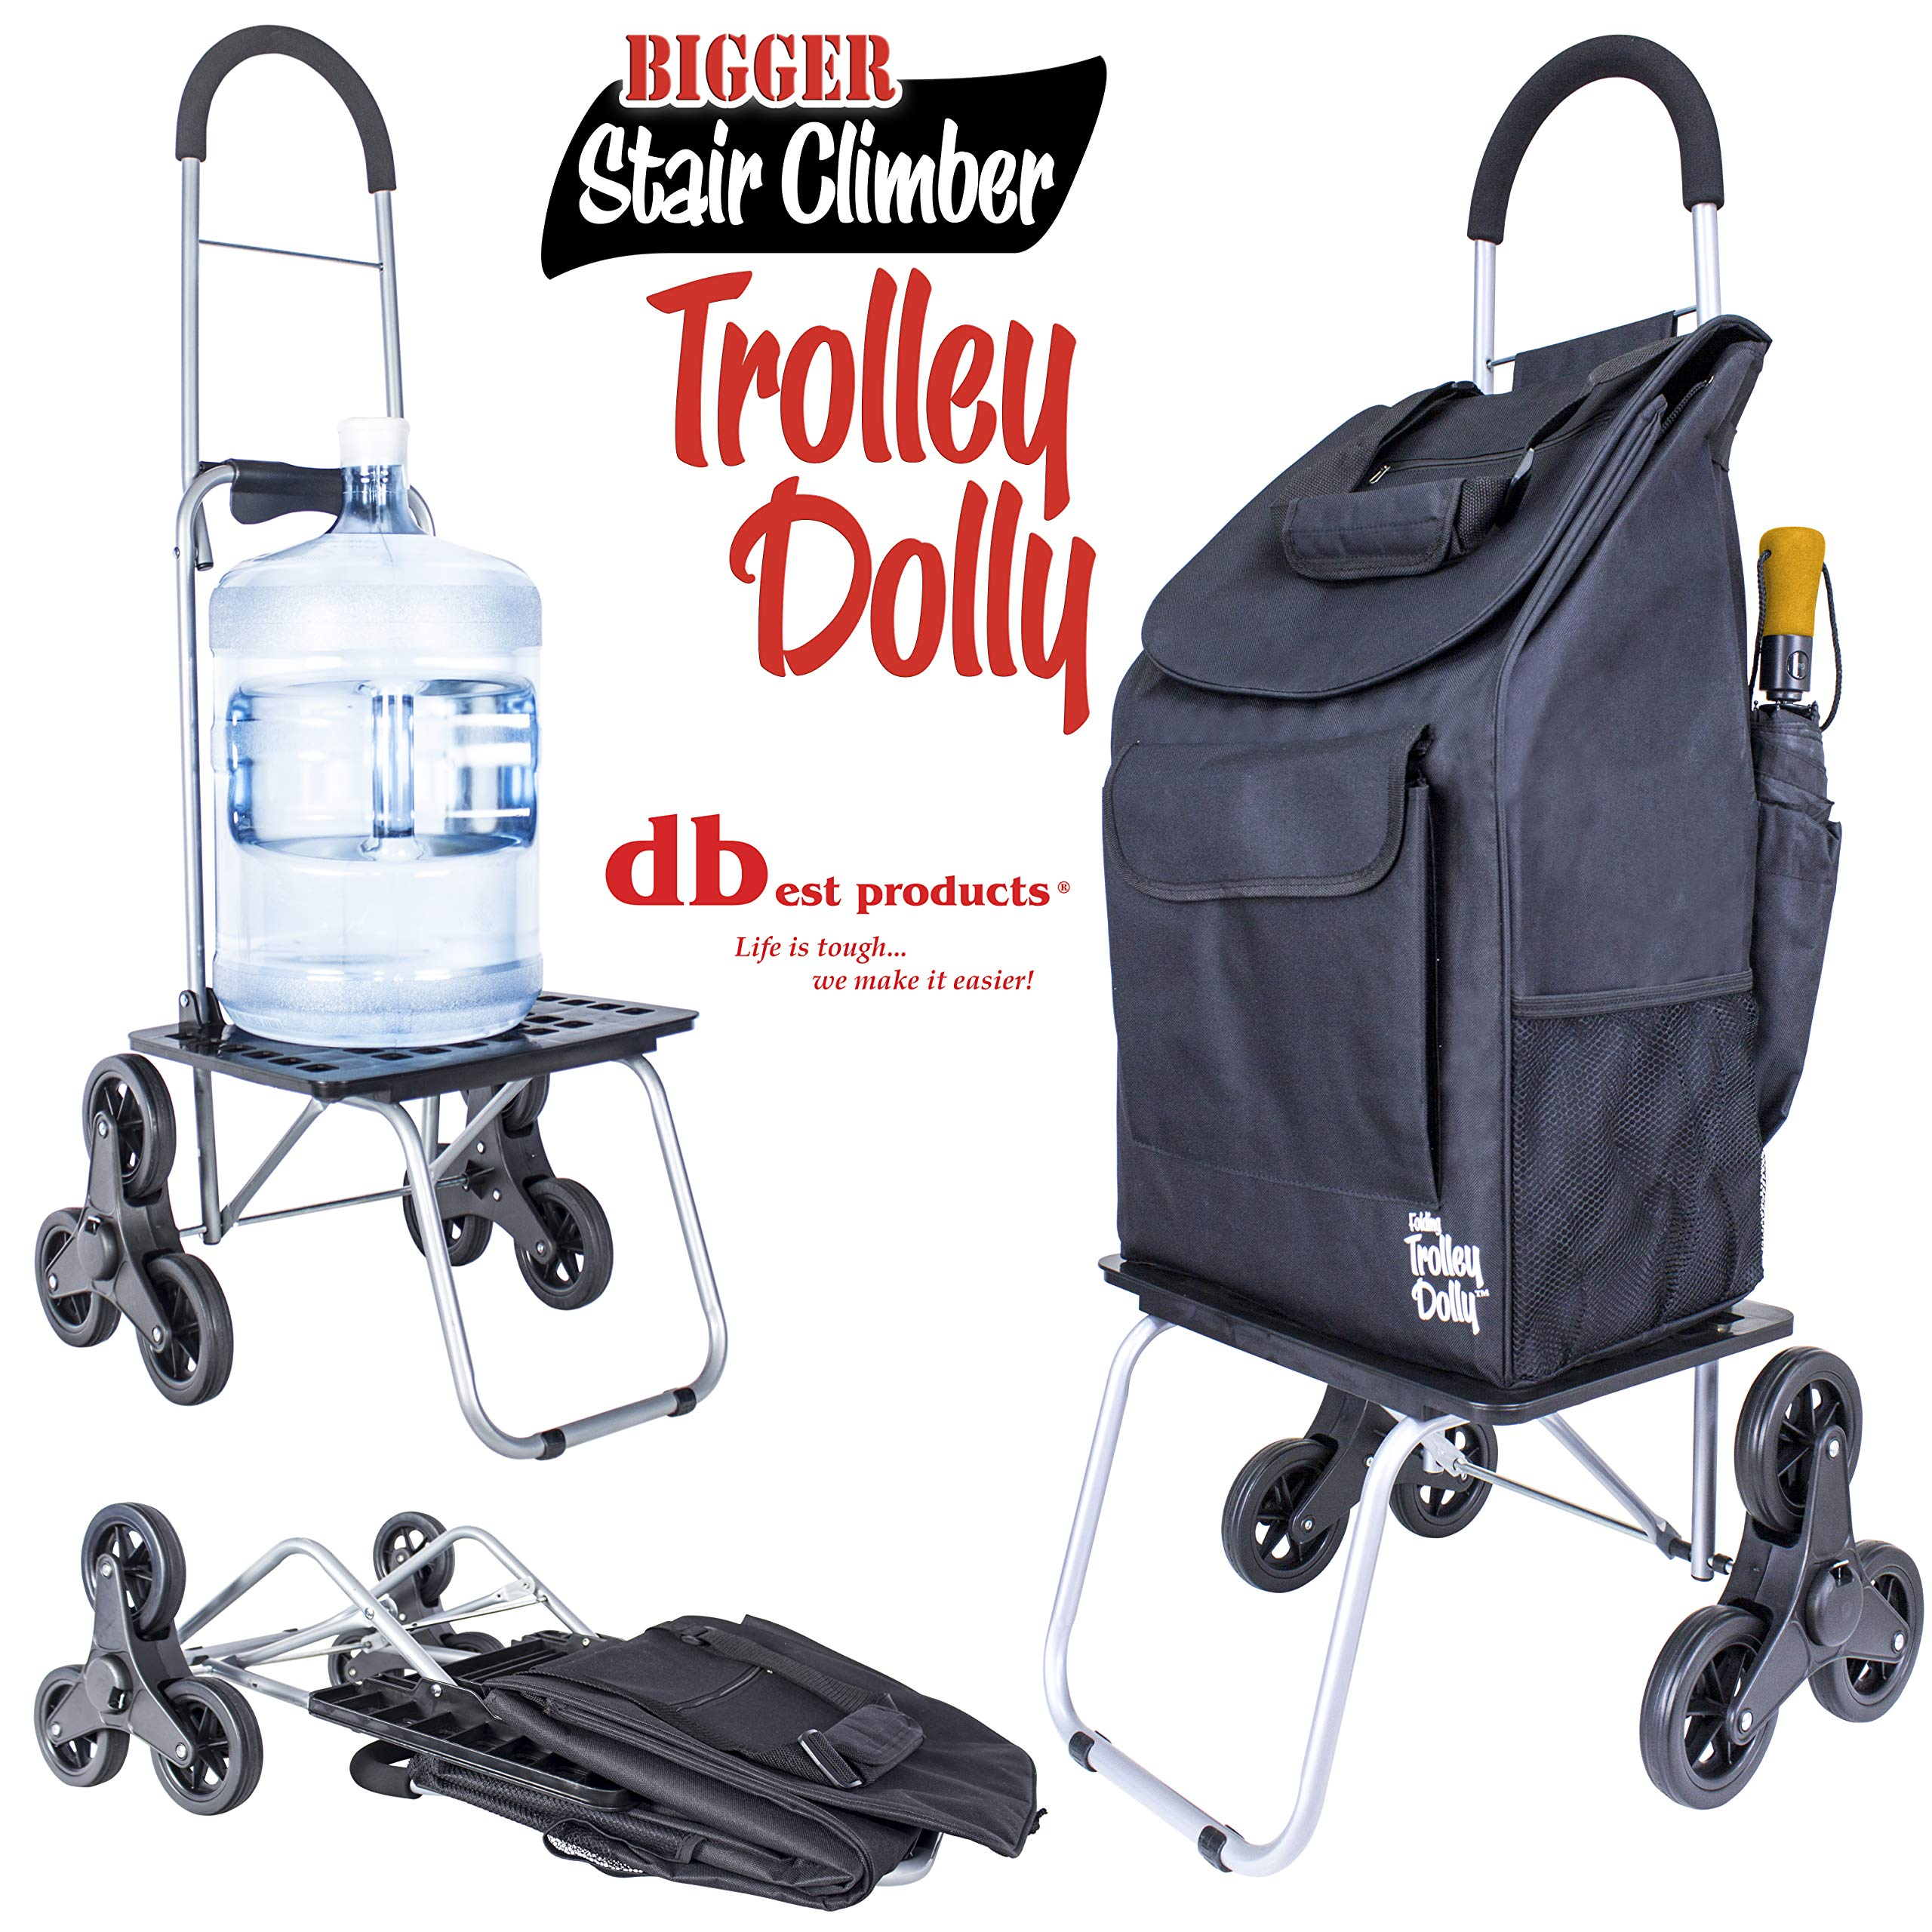 dbest products Stair Climber Bigger Trolley Dolly, Black Grocery Shopping Foldable Cart Condo Apartment by dbest products